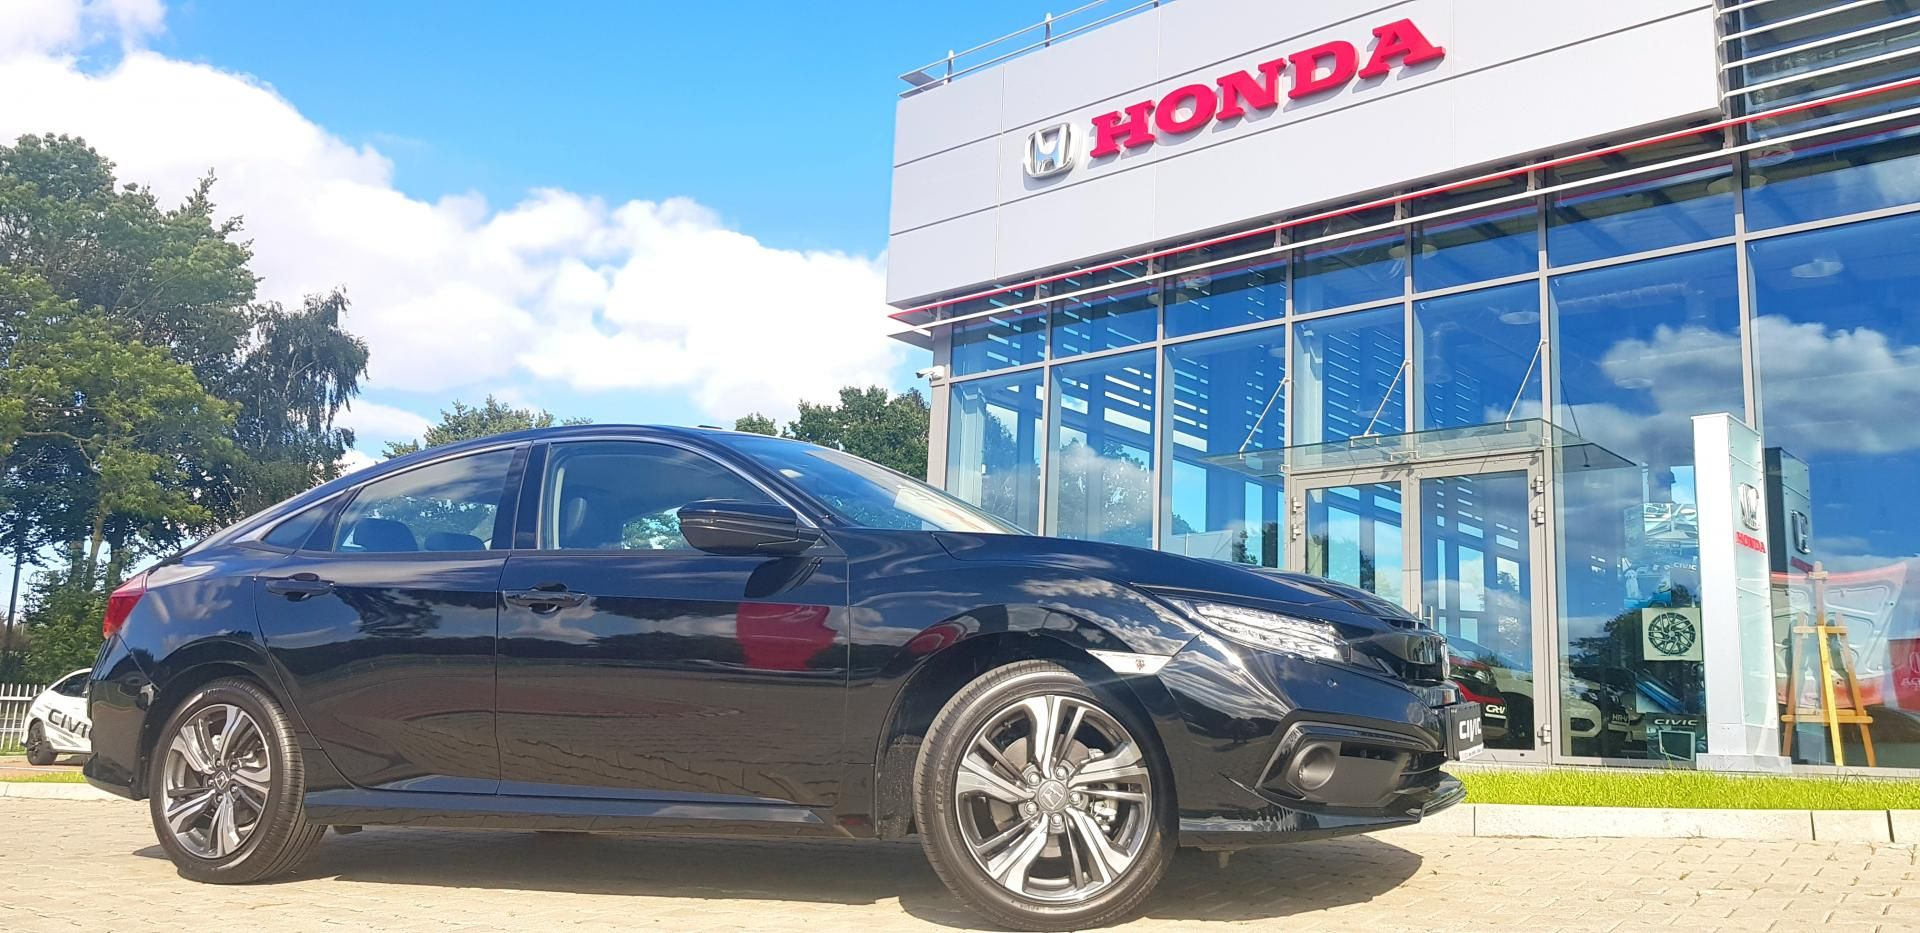 Honda Civic Honda Civic 4D 1.5 VTEC TURBO Executive MT 2020